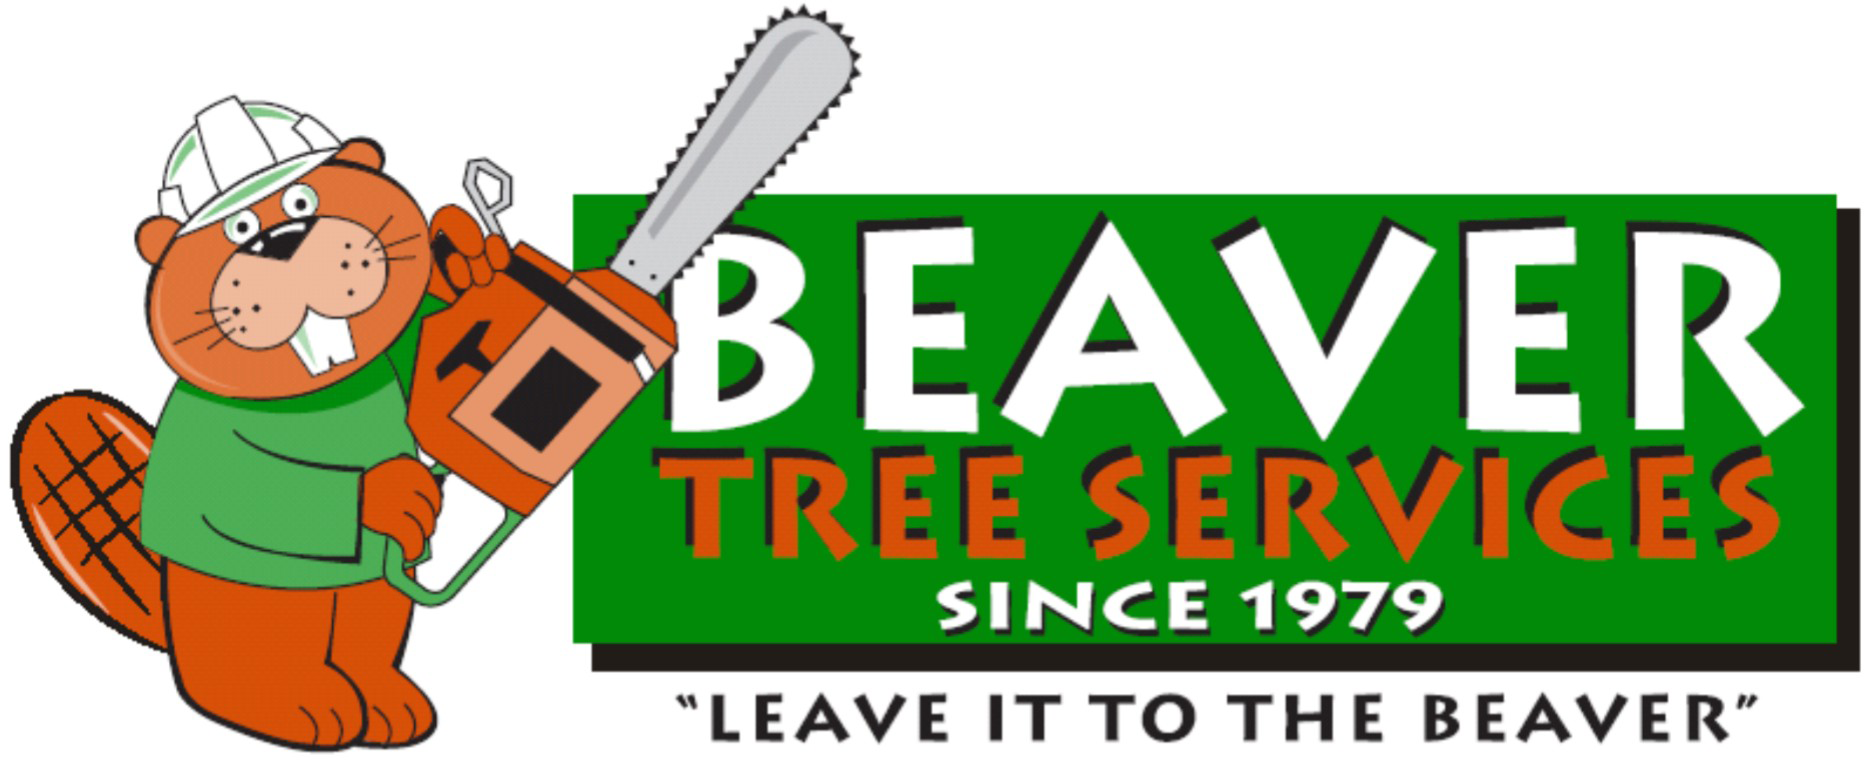 Tree Services Perth Beaver Tree Services